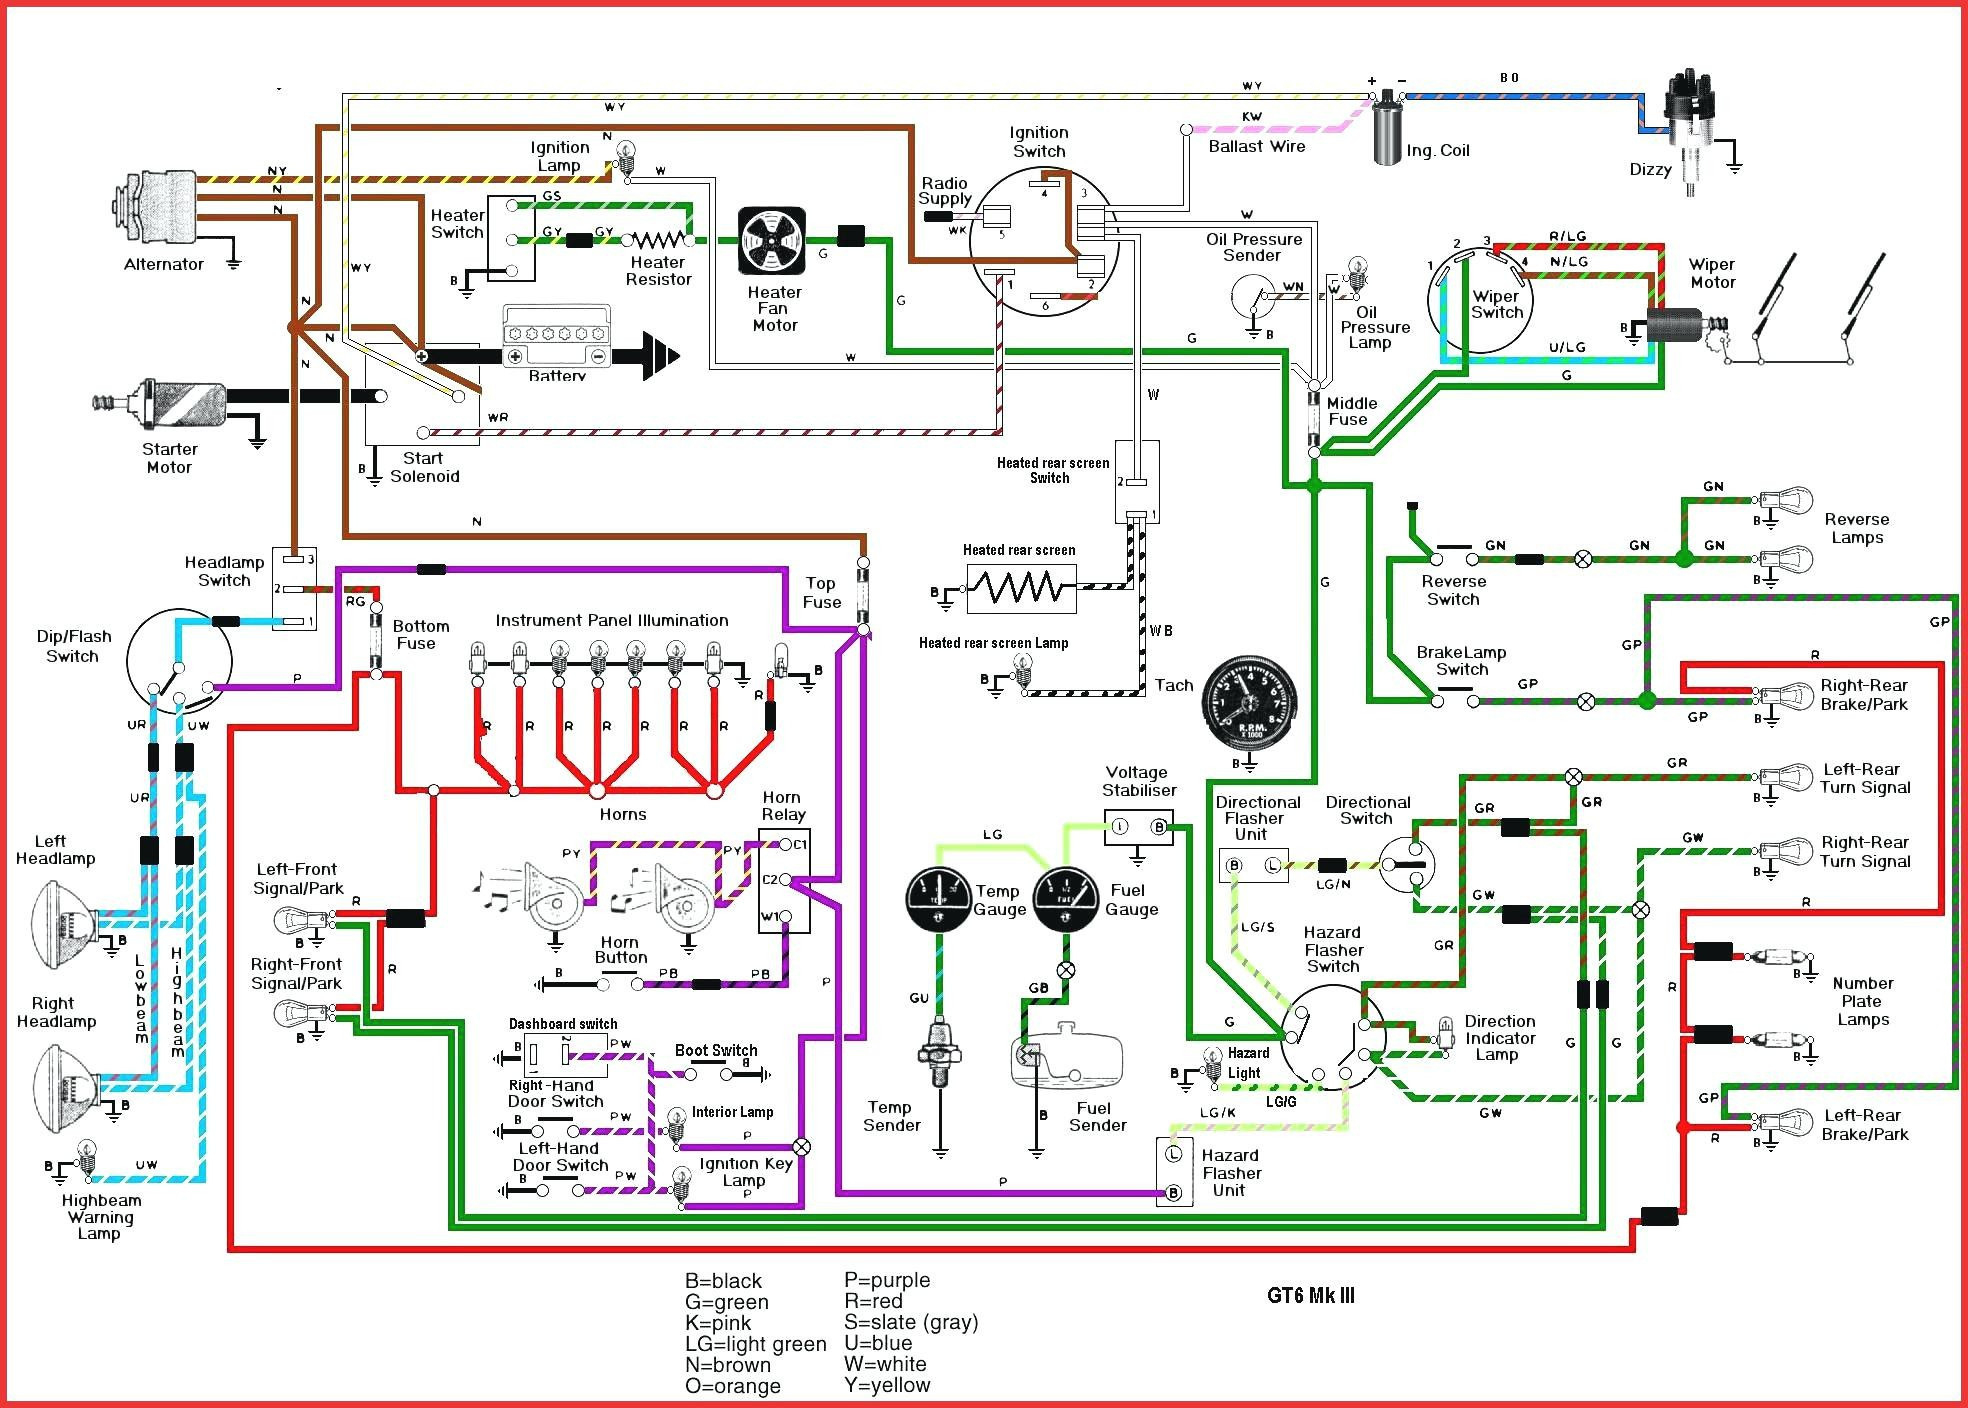 Race Car Wiring Setup - Wiring Diagram Detailed - Basic Race Car Wiring Diagram